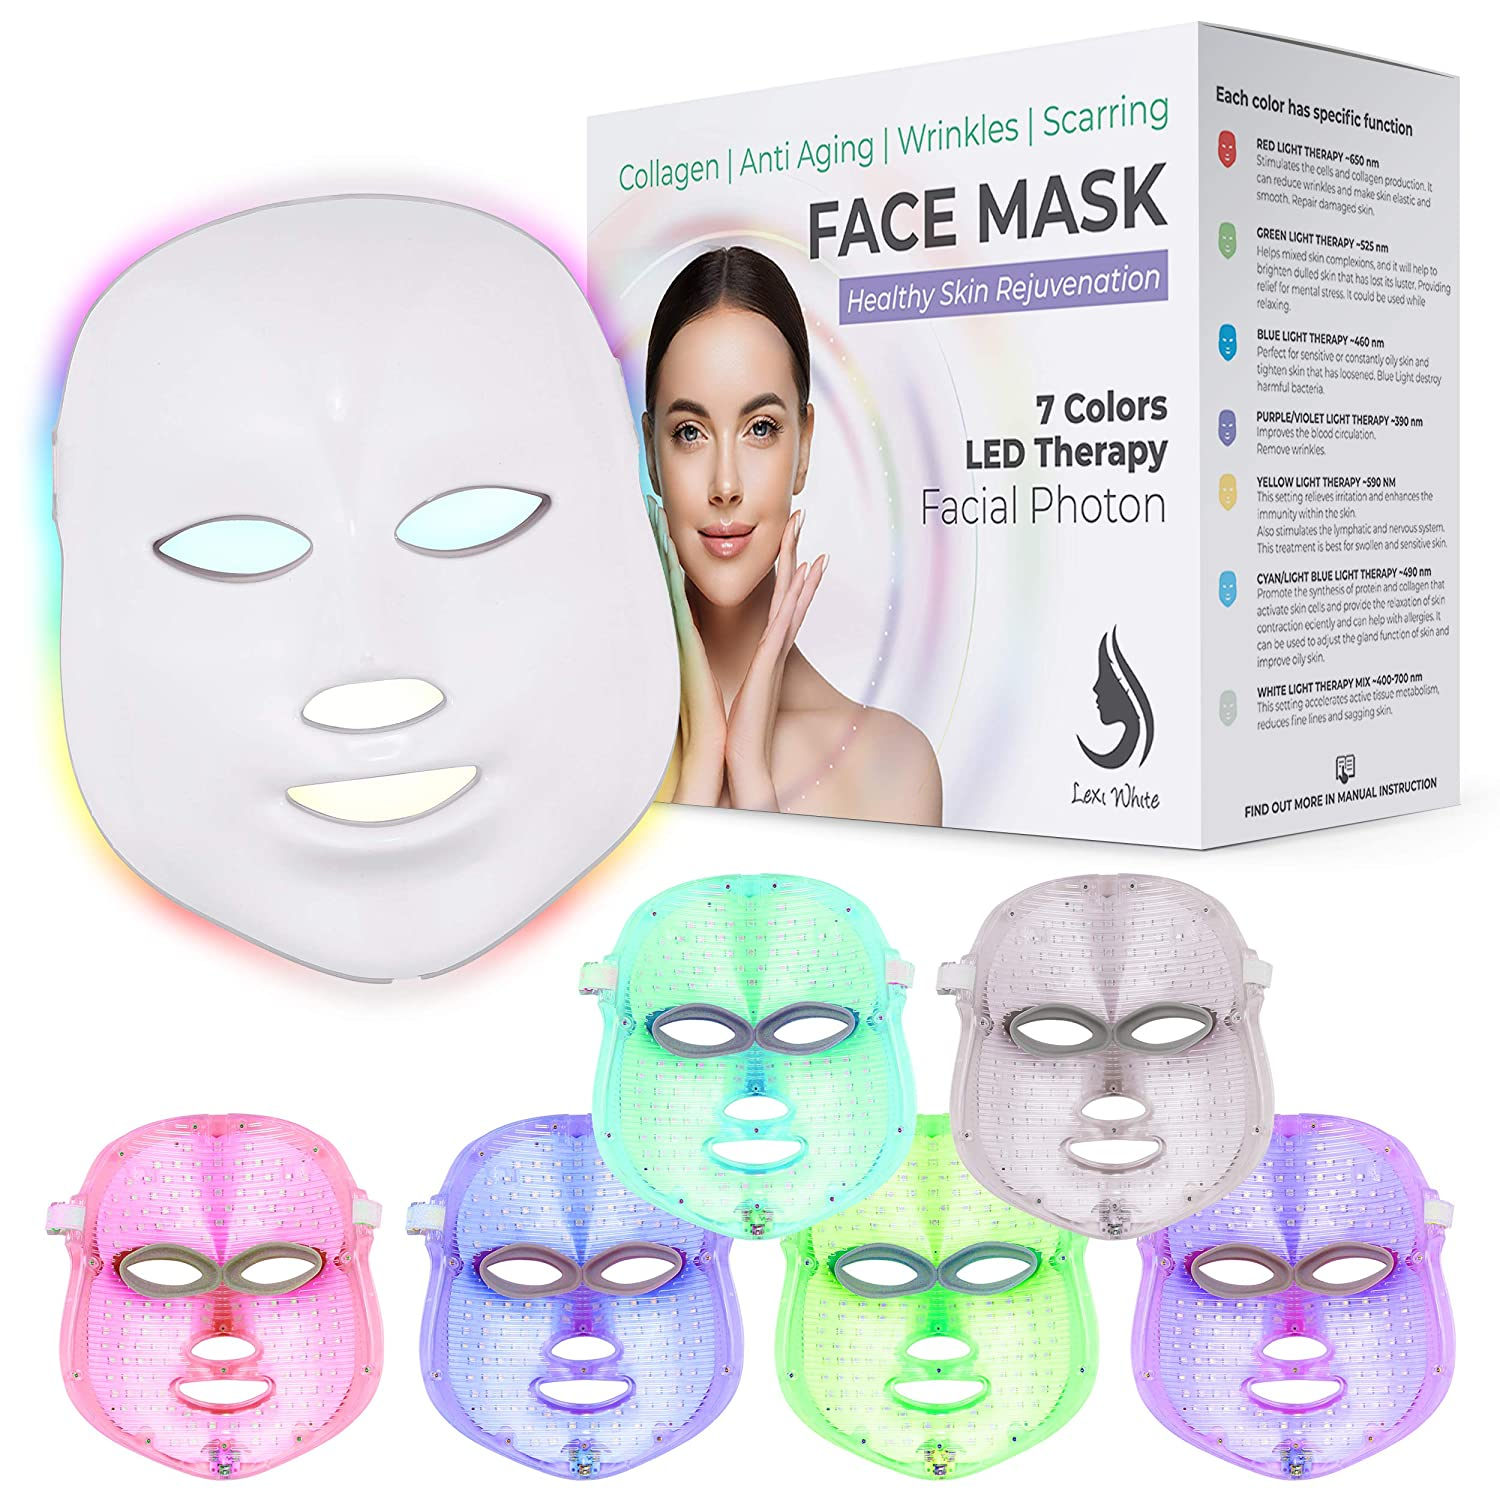 Red Light Therapy LED Face Mask 7 Color | LED Mask Therapy Facial Photon For Healthy Skin Rejuvenation | Collagen, Anti Aging, Wrinkles, Scarring | Korean Skin Care, Facial Skin Care Mask Updated Version (Version 2) (White)